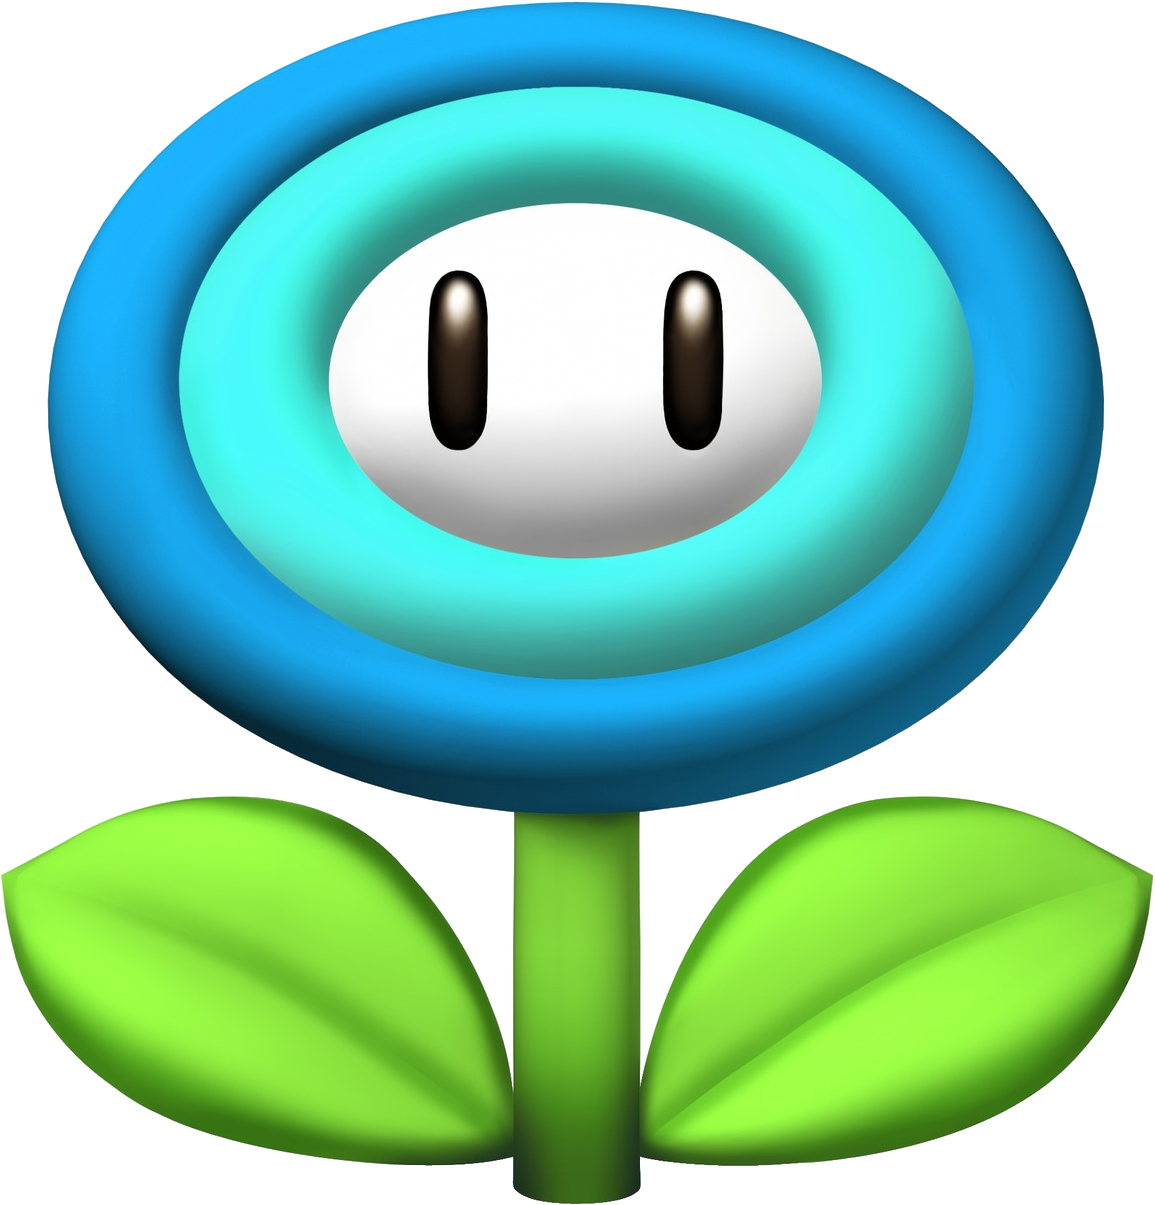 Mario flower png. Image ice artwork new